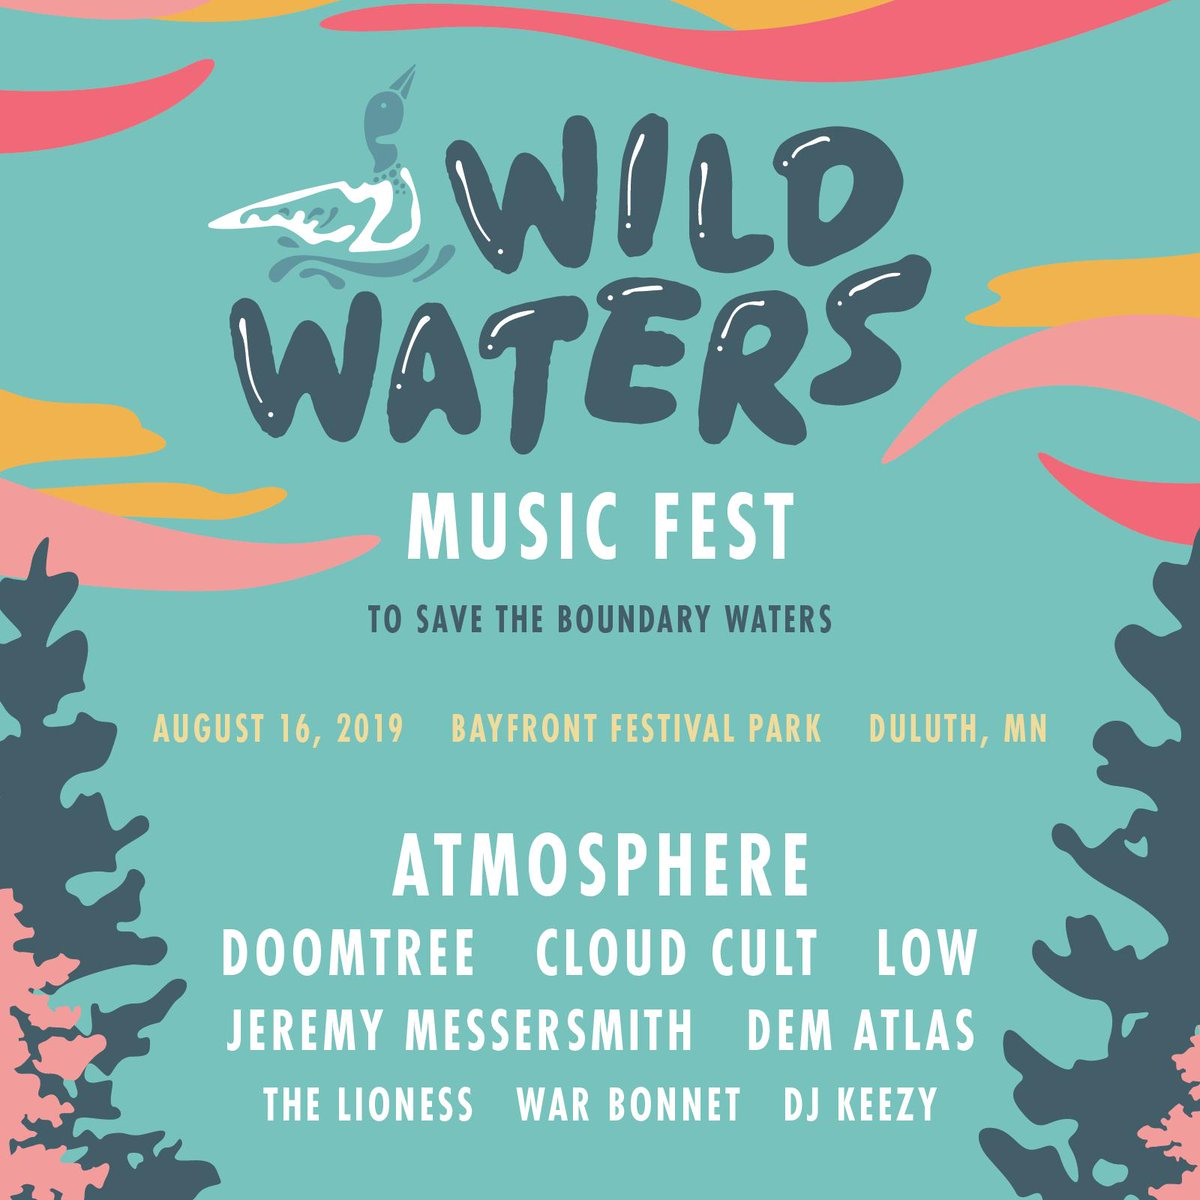 DULUTH, MN: Only 3 WEEKS until @atmosphere, @dematlas, @TheLionessMusic, @DJKeezy612 & more make party at Wild Waters Music Fest to @savethebwca! Tickets on sale now: bit.ly/WildWaters2019